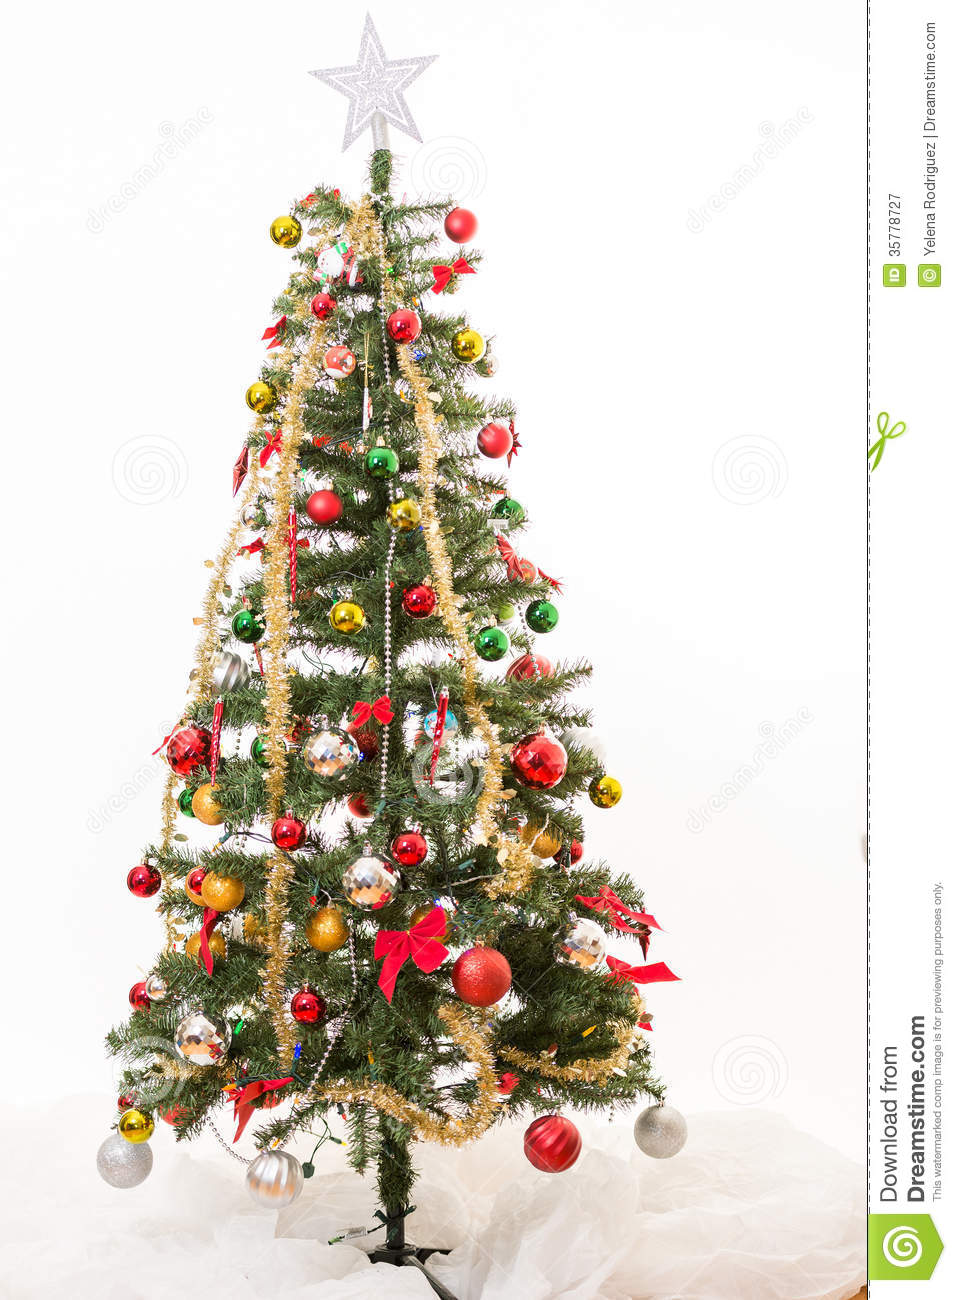 White Christmas Tree Backgrounds christmas tree with white background ...